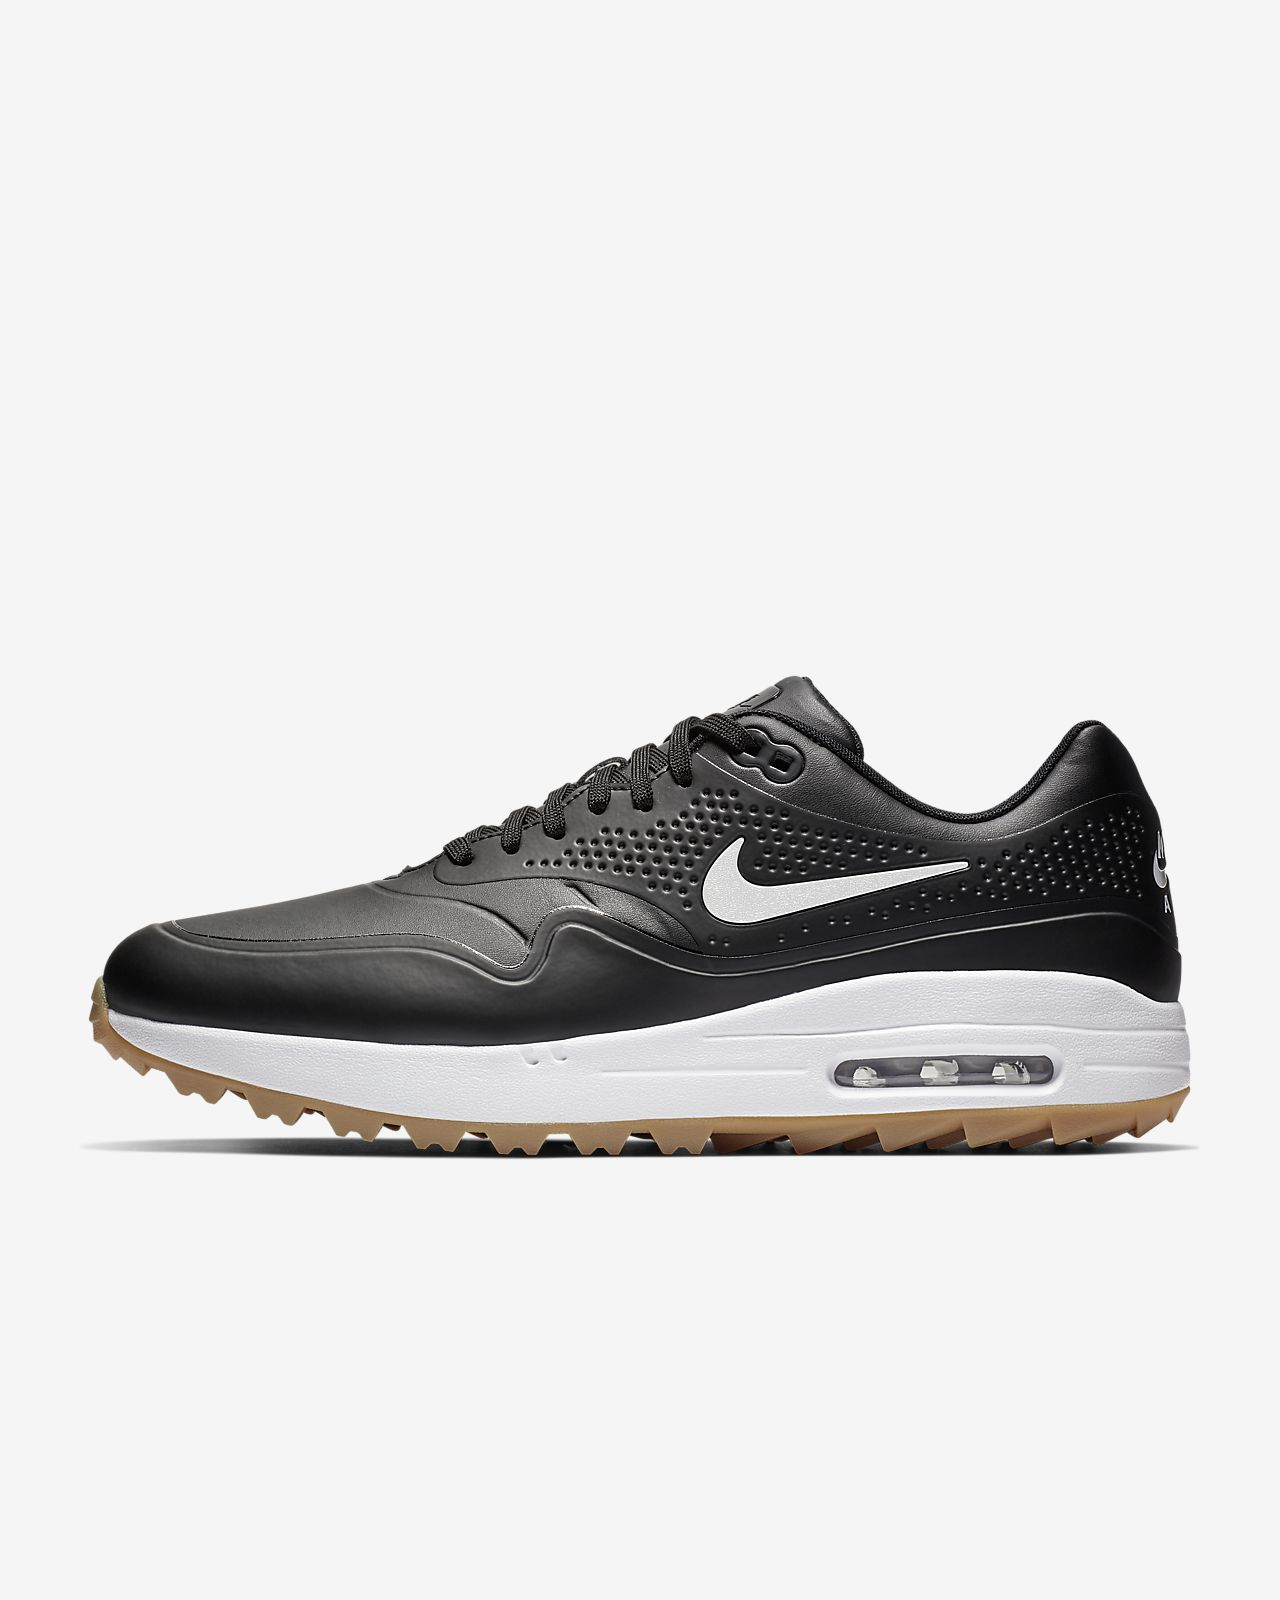 mayor selección de estilo máximo encanto de costo Nike Air Max 1 G Men's Golf Shoe